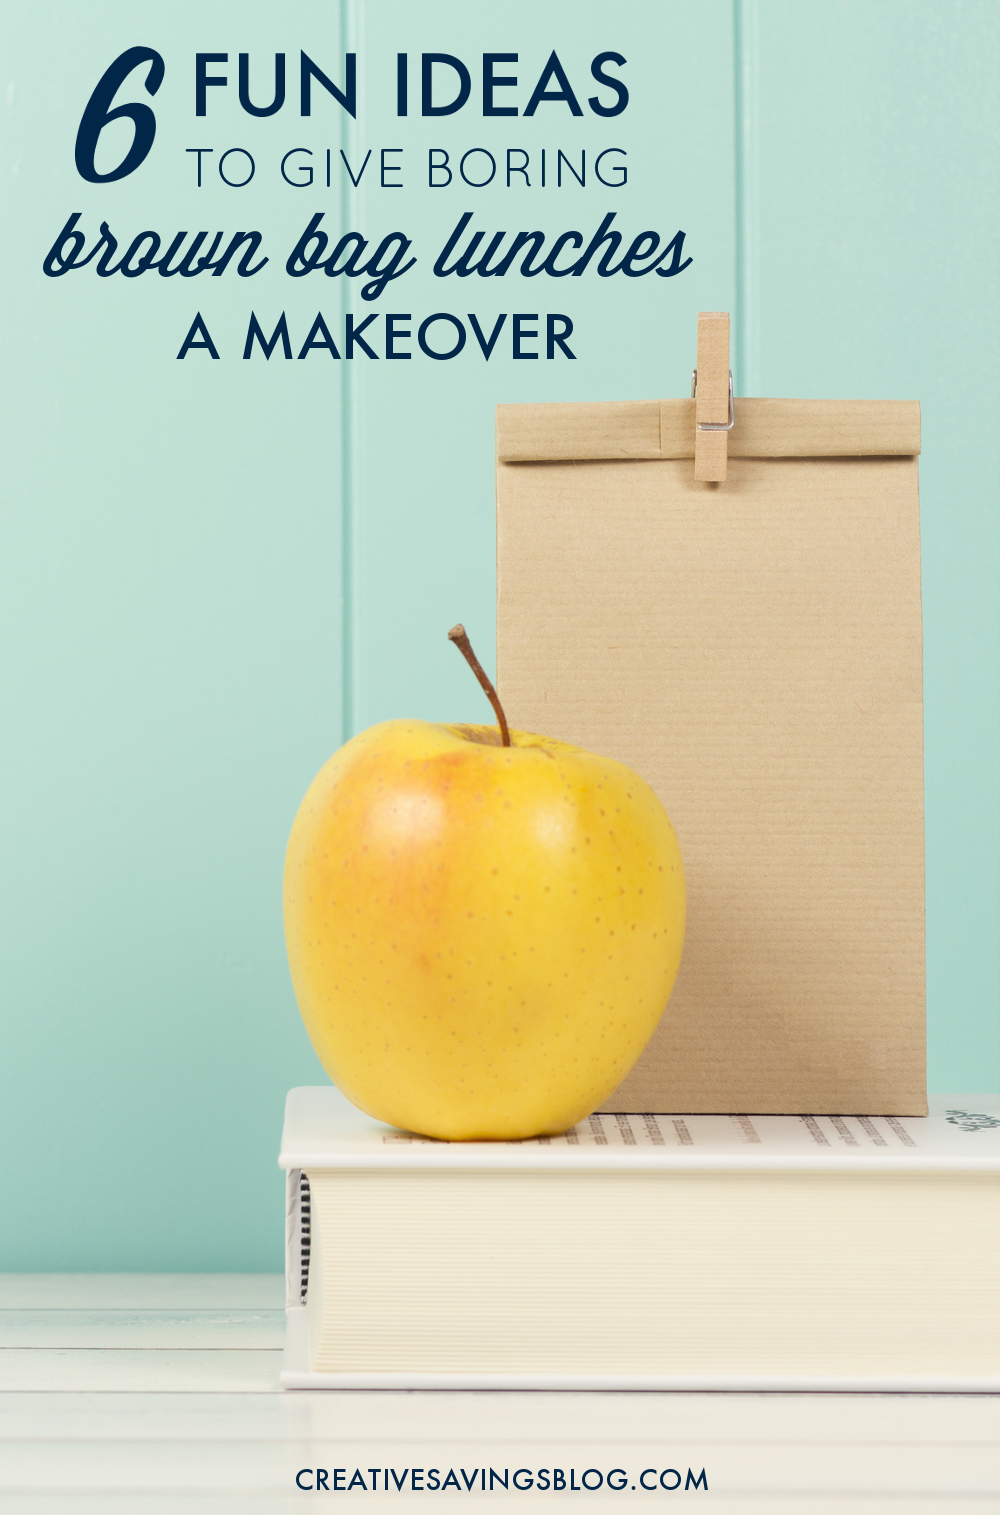 Bagged lunches don't have to be boring! Use these 6 brown bag lunch ideas to kick your lunch up a notch, and give school-aged kiddos food that makes them smile. They will love helping out with #4!